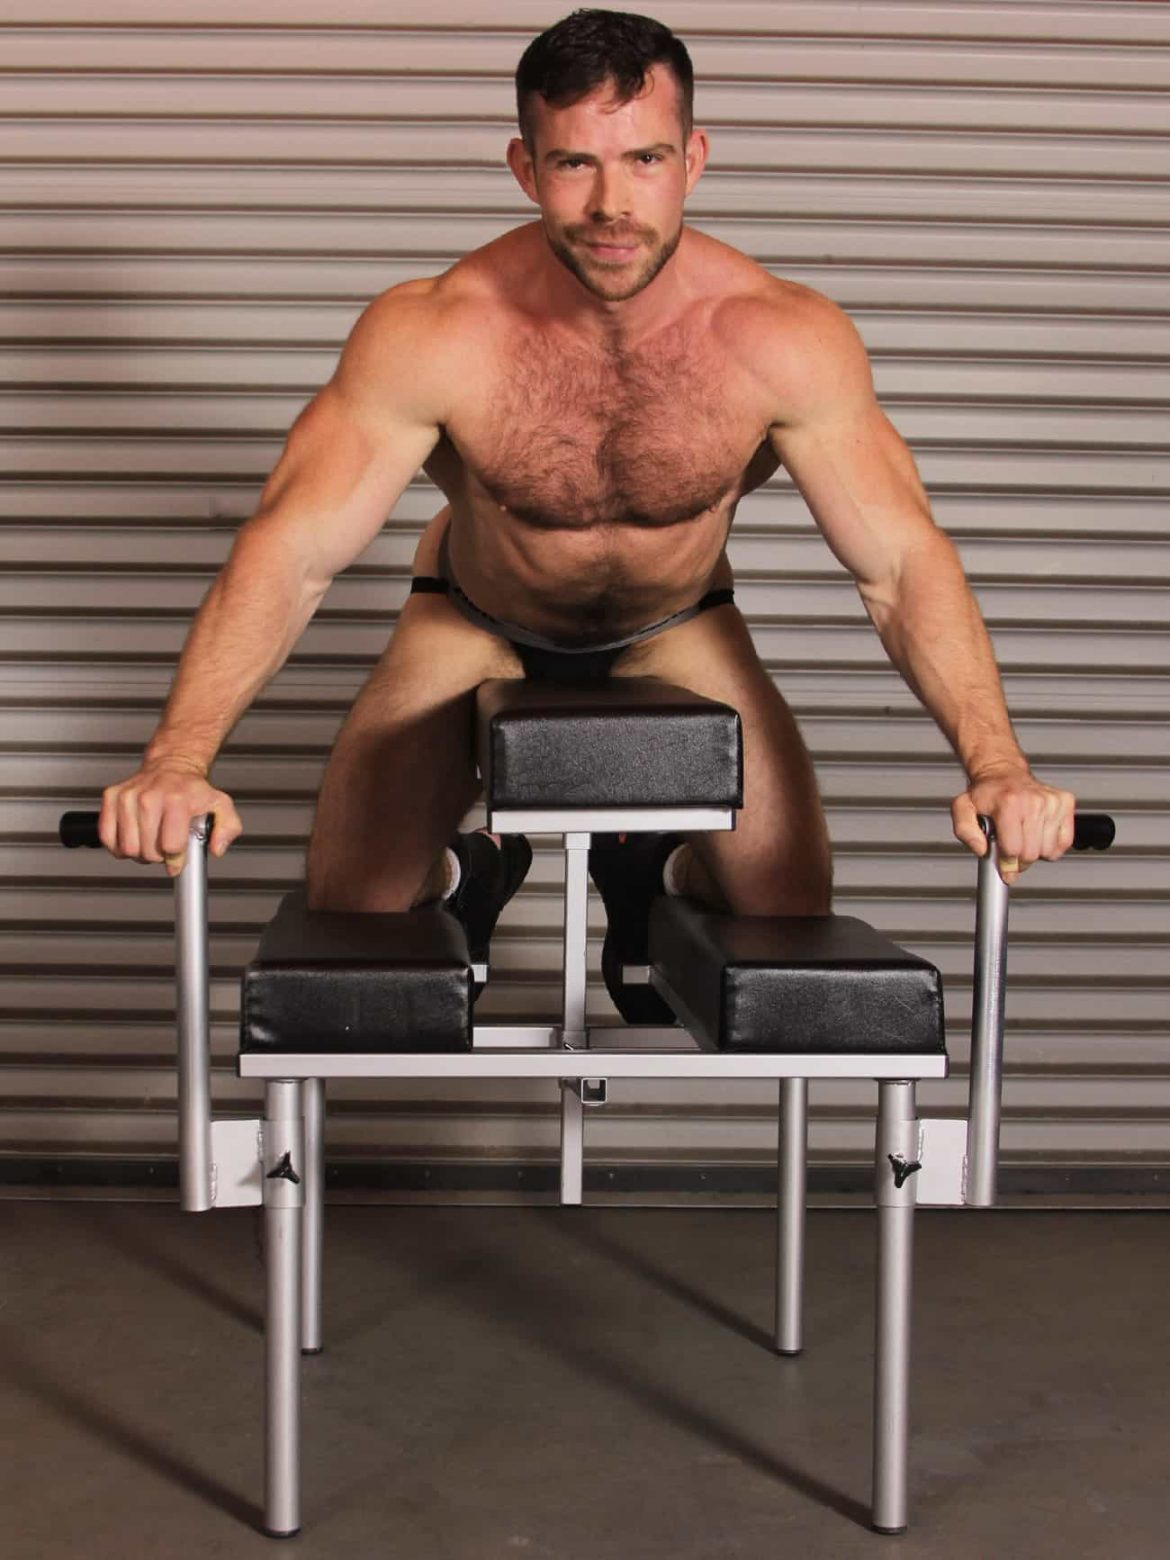 JimSupport Fuck Bench, Model Liam Knox